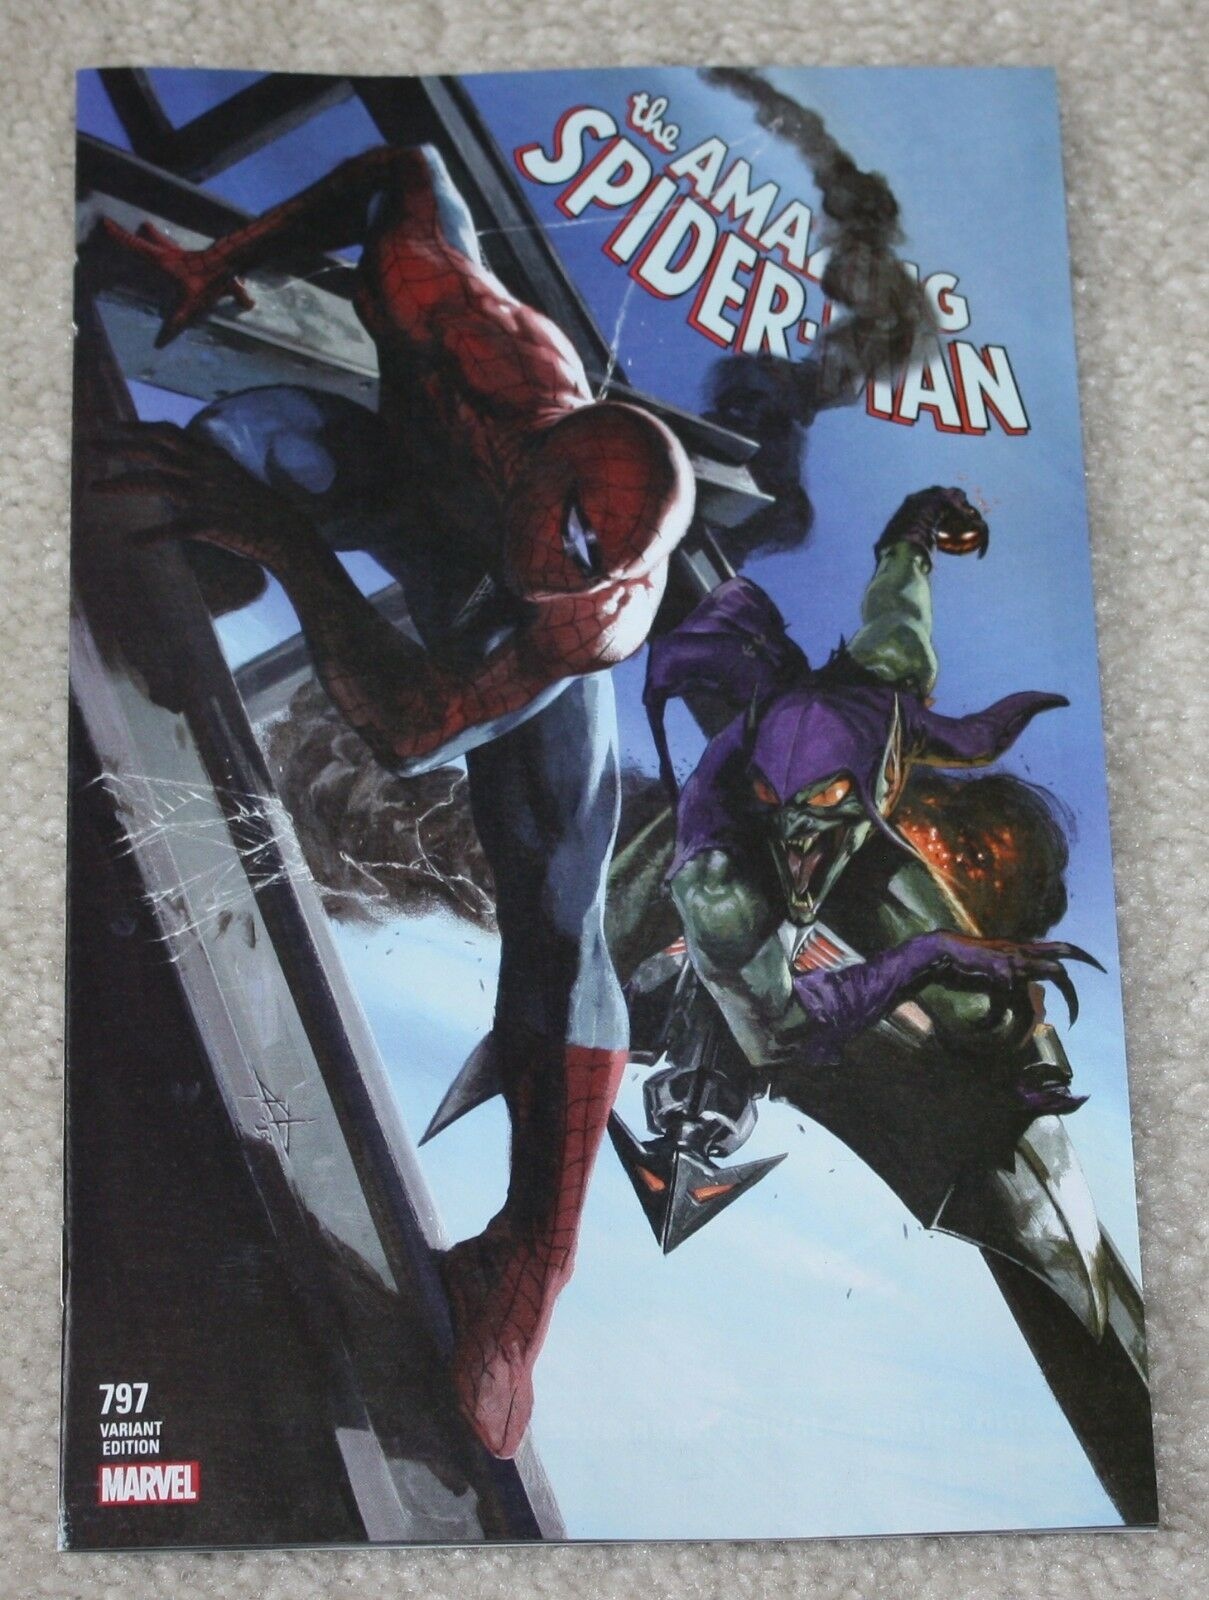 AMAZING SPIDER-MAN #797 GABRIELLE DELL OTTO LOGO EXCLUSIVE VARIANT RED GOBLIN